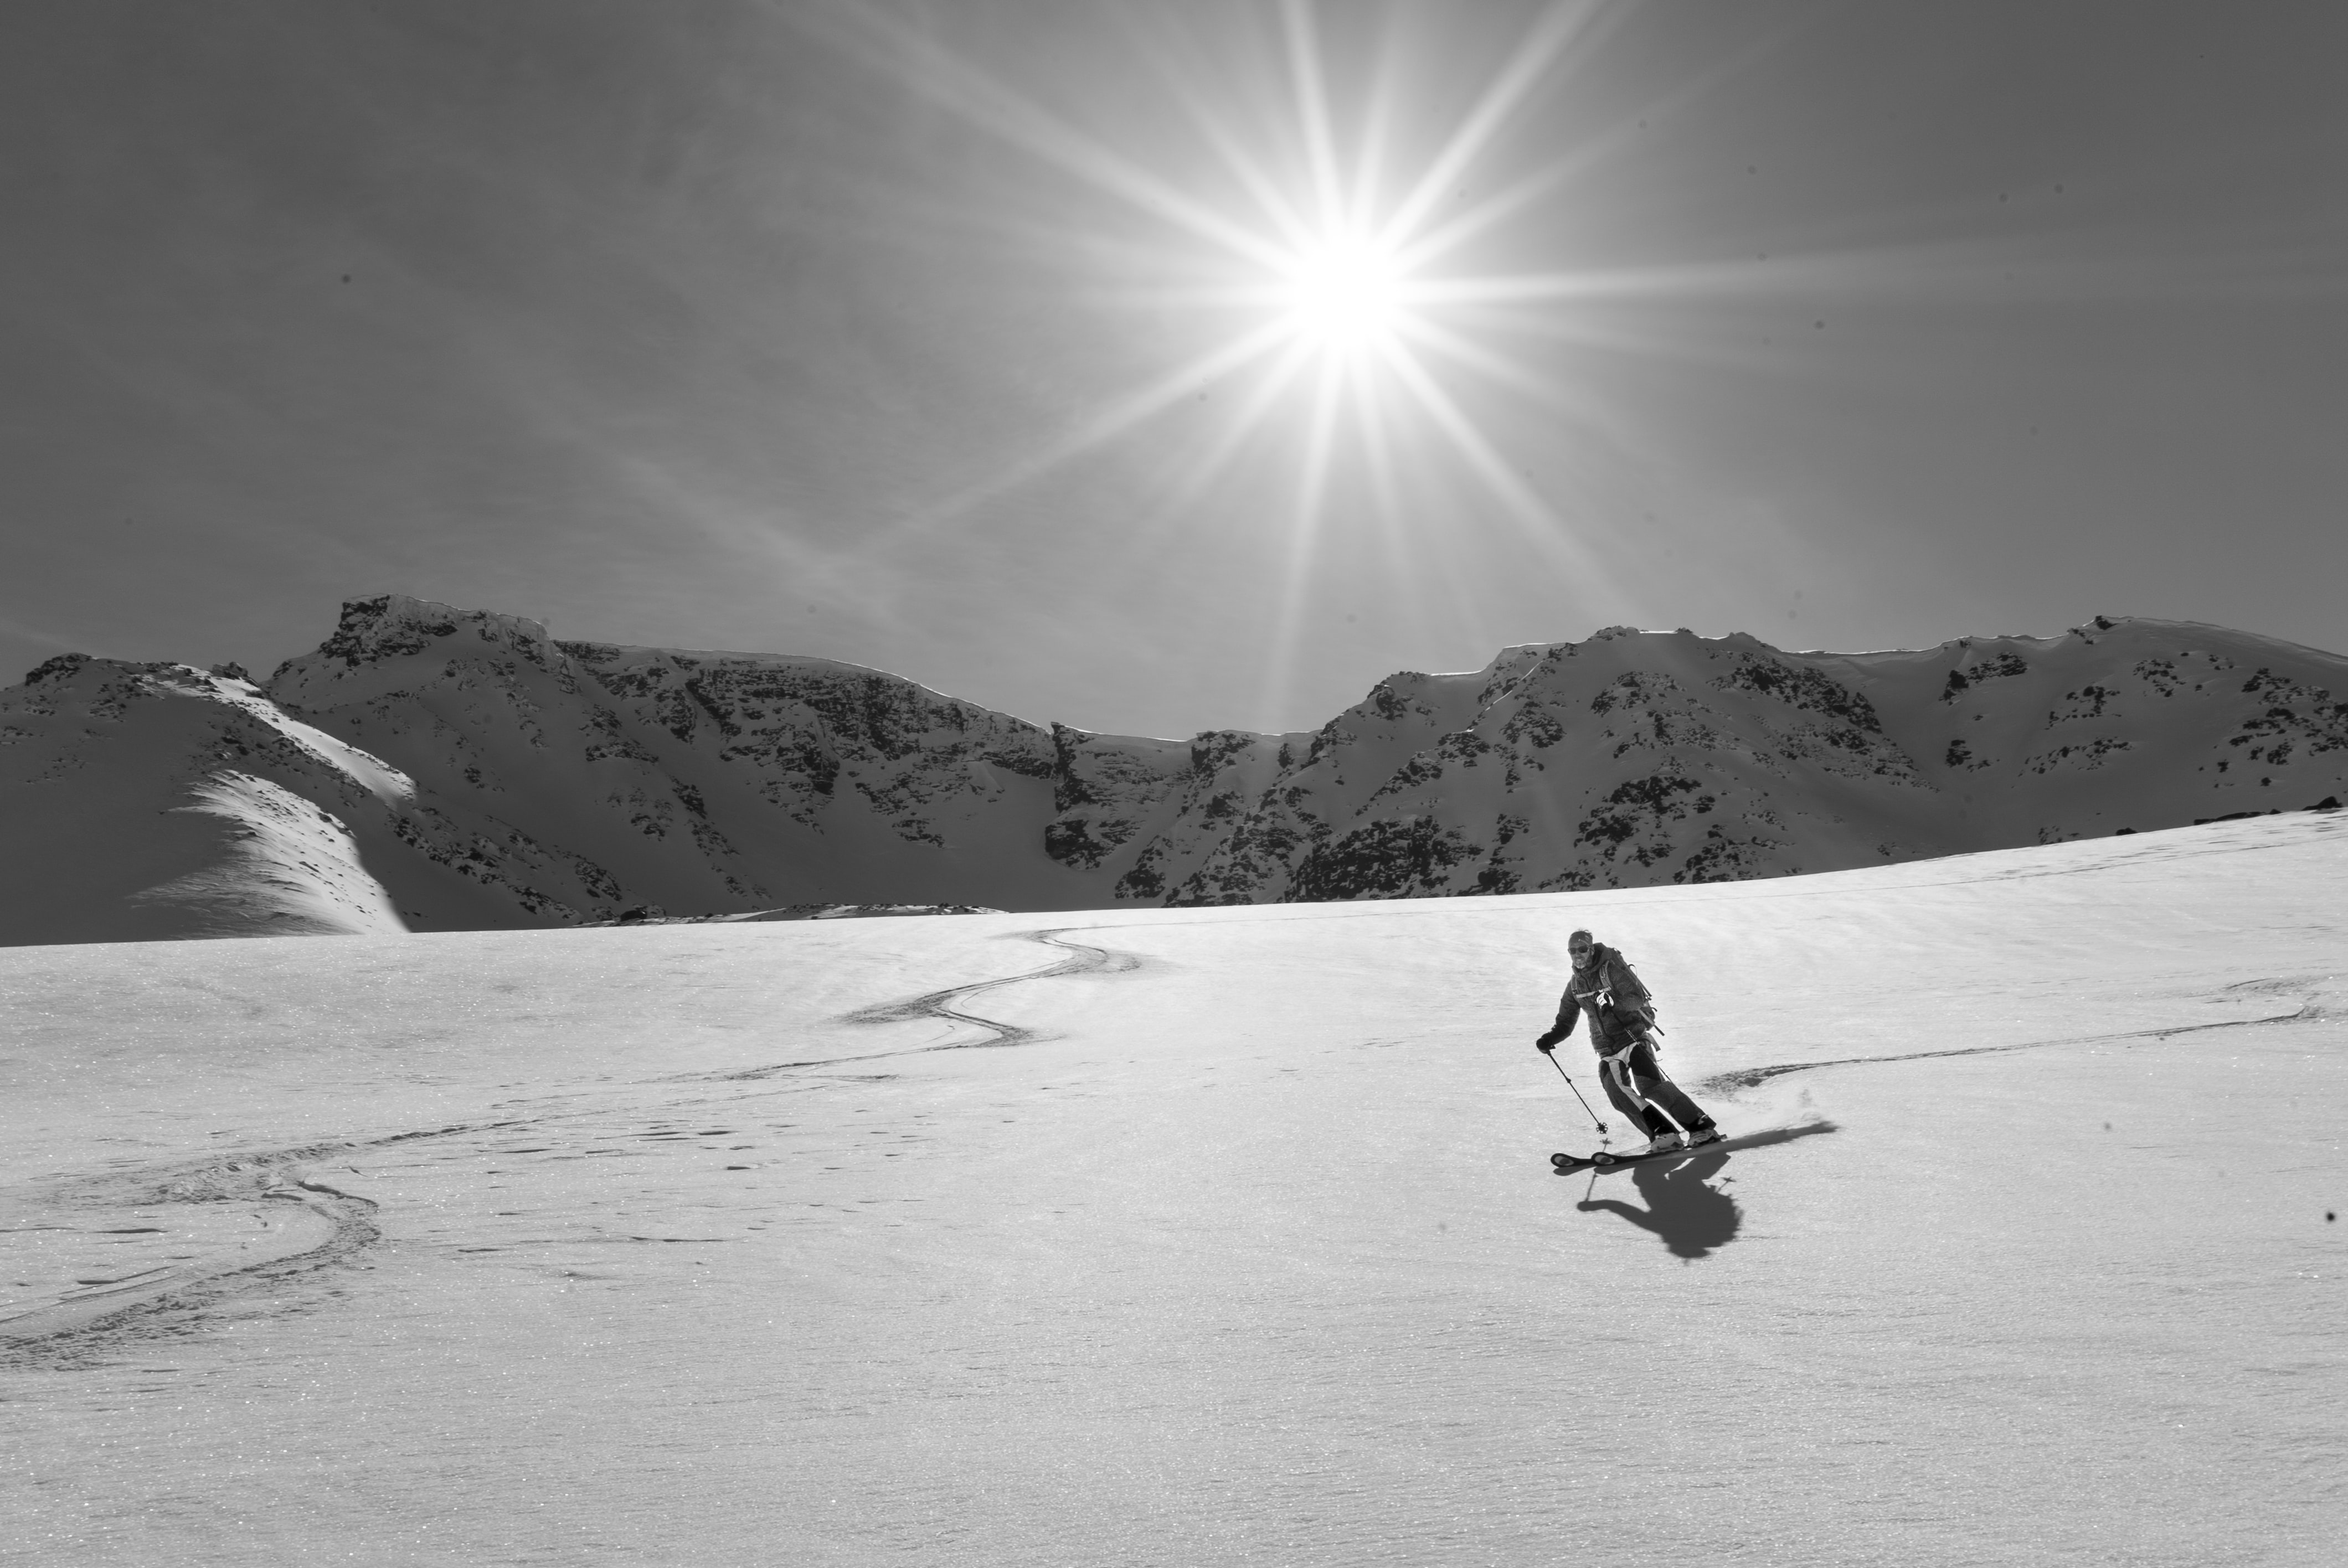 grayscale photography of person skiing on snowy mountain